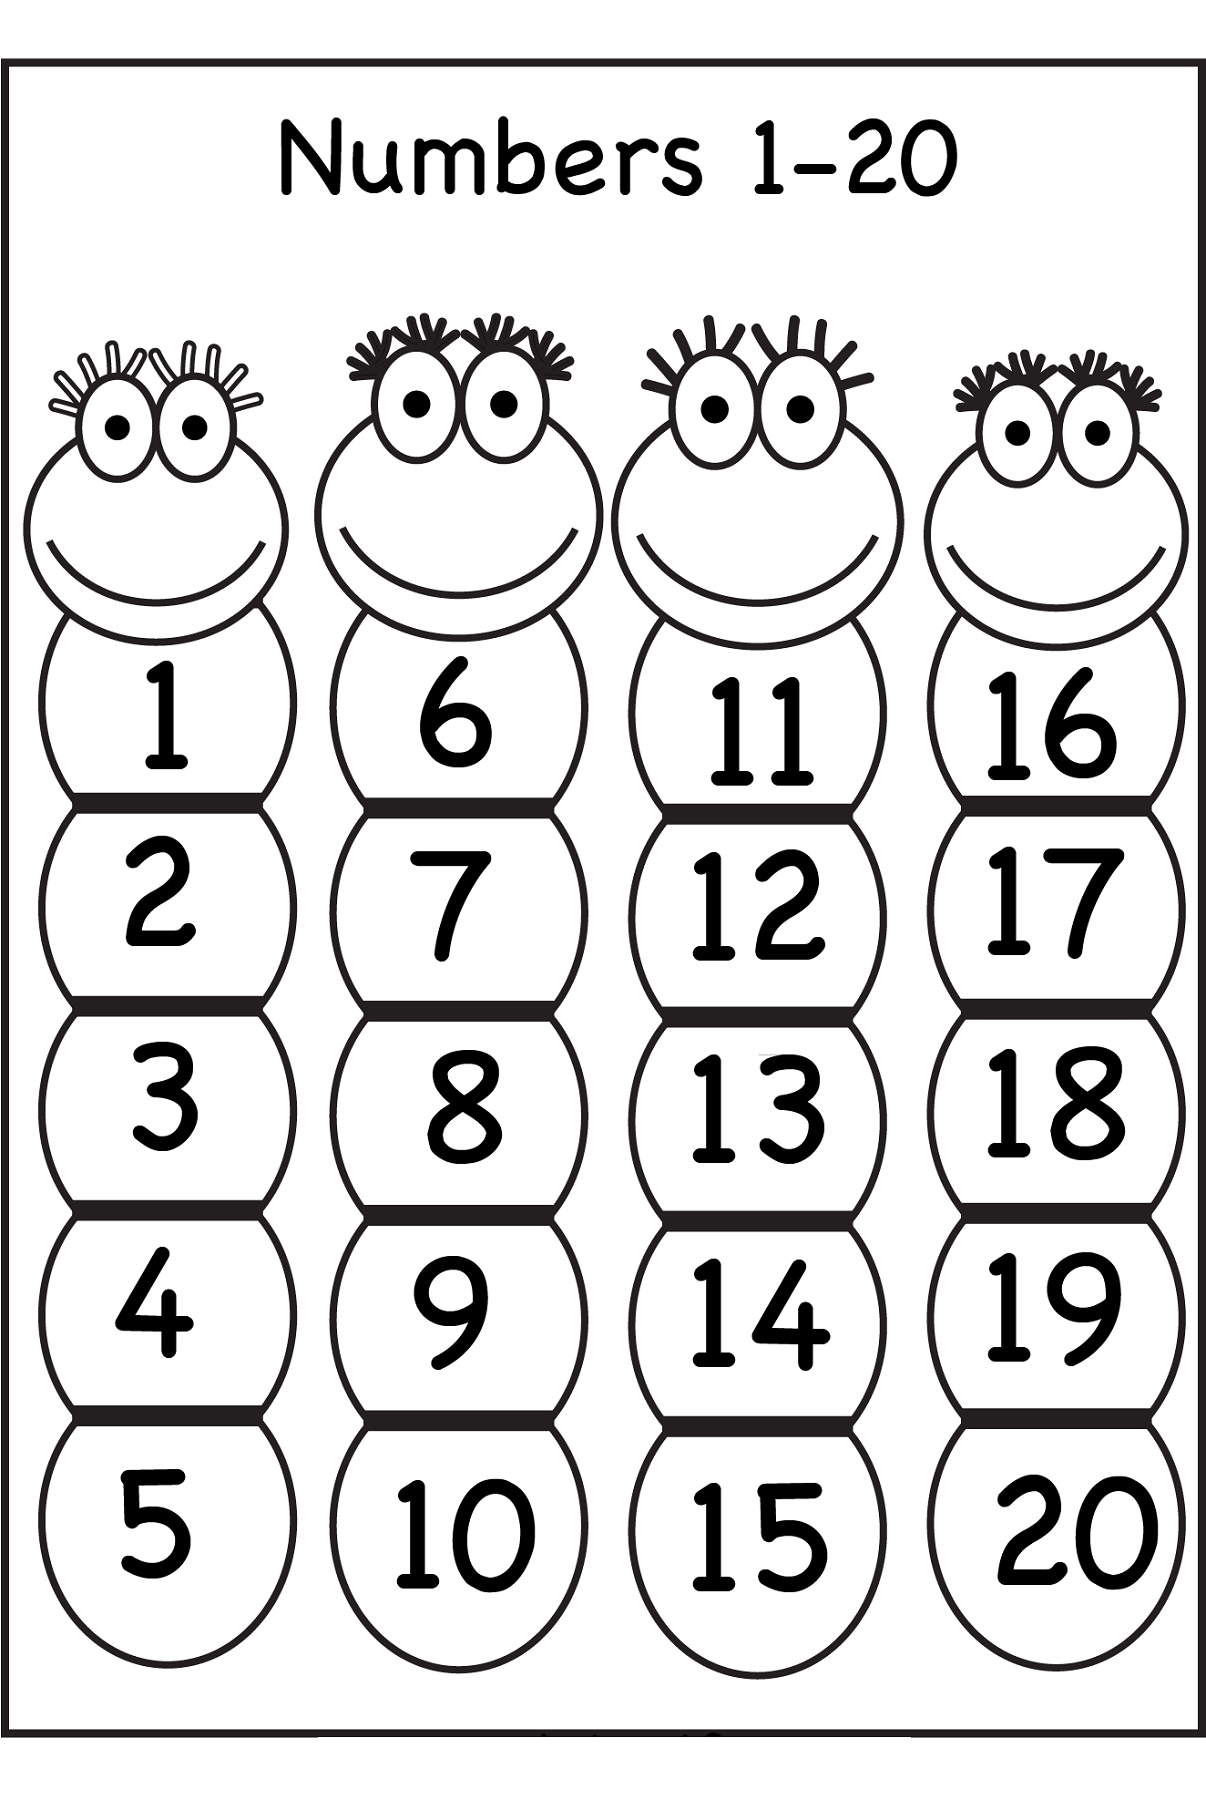 Counting coloring pages 1 20 coloring page for Count by number coloring pages